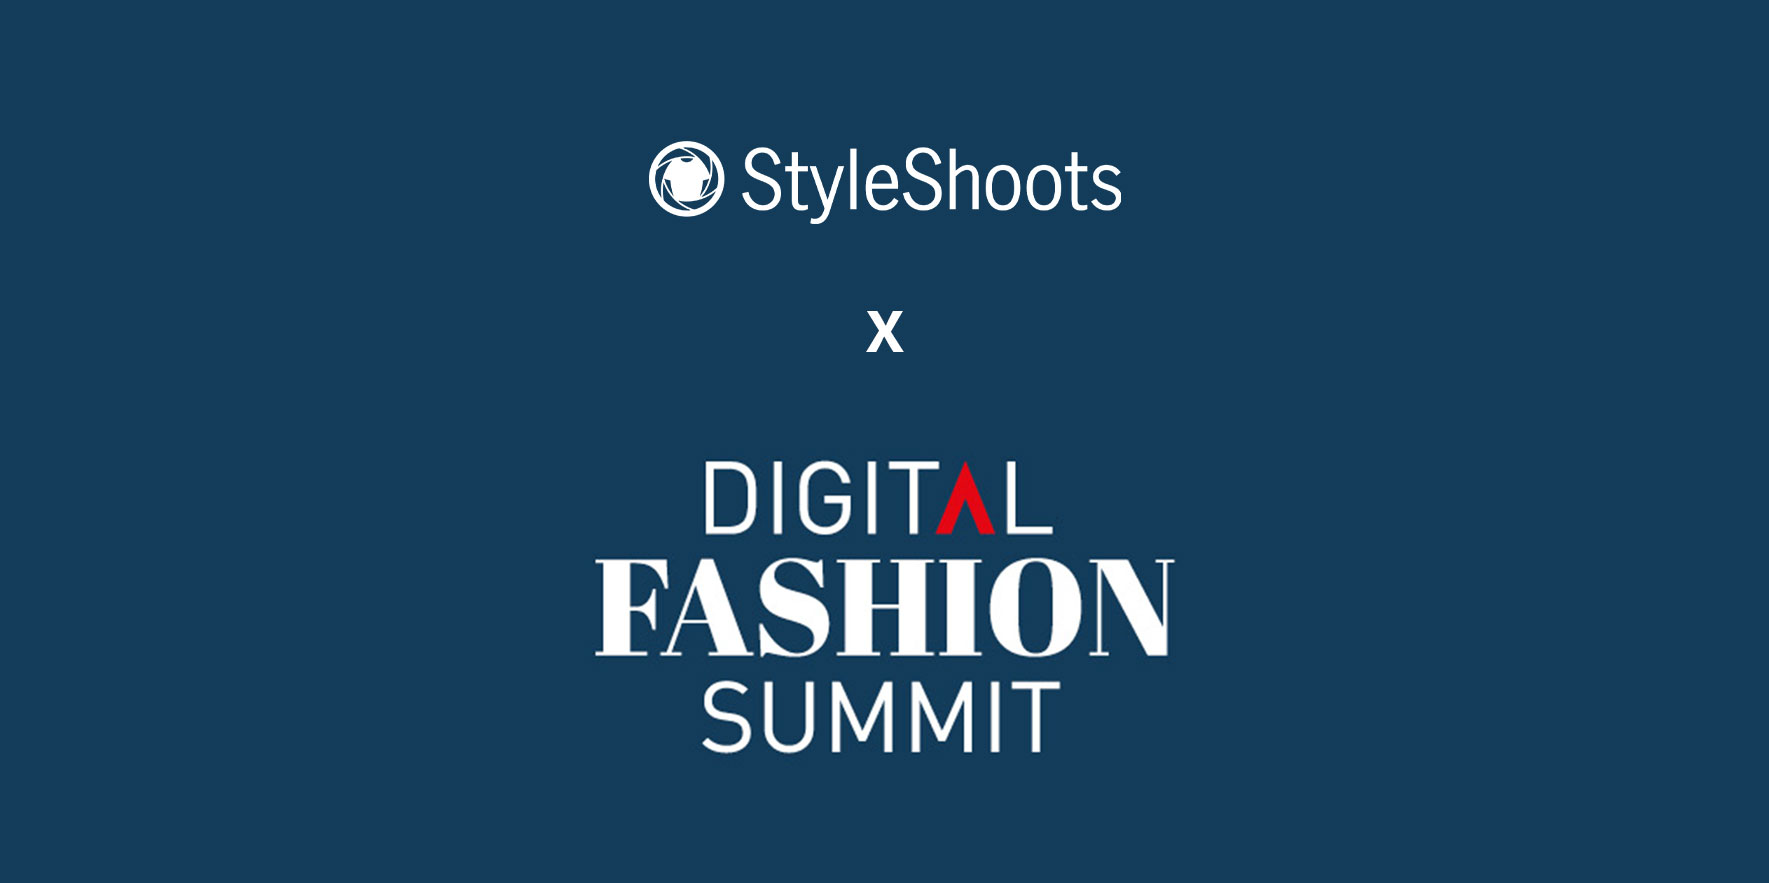 digital-fashion-summit-header-may-2019.jpg